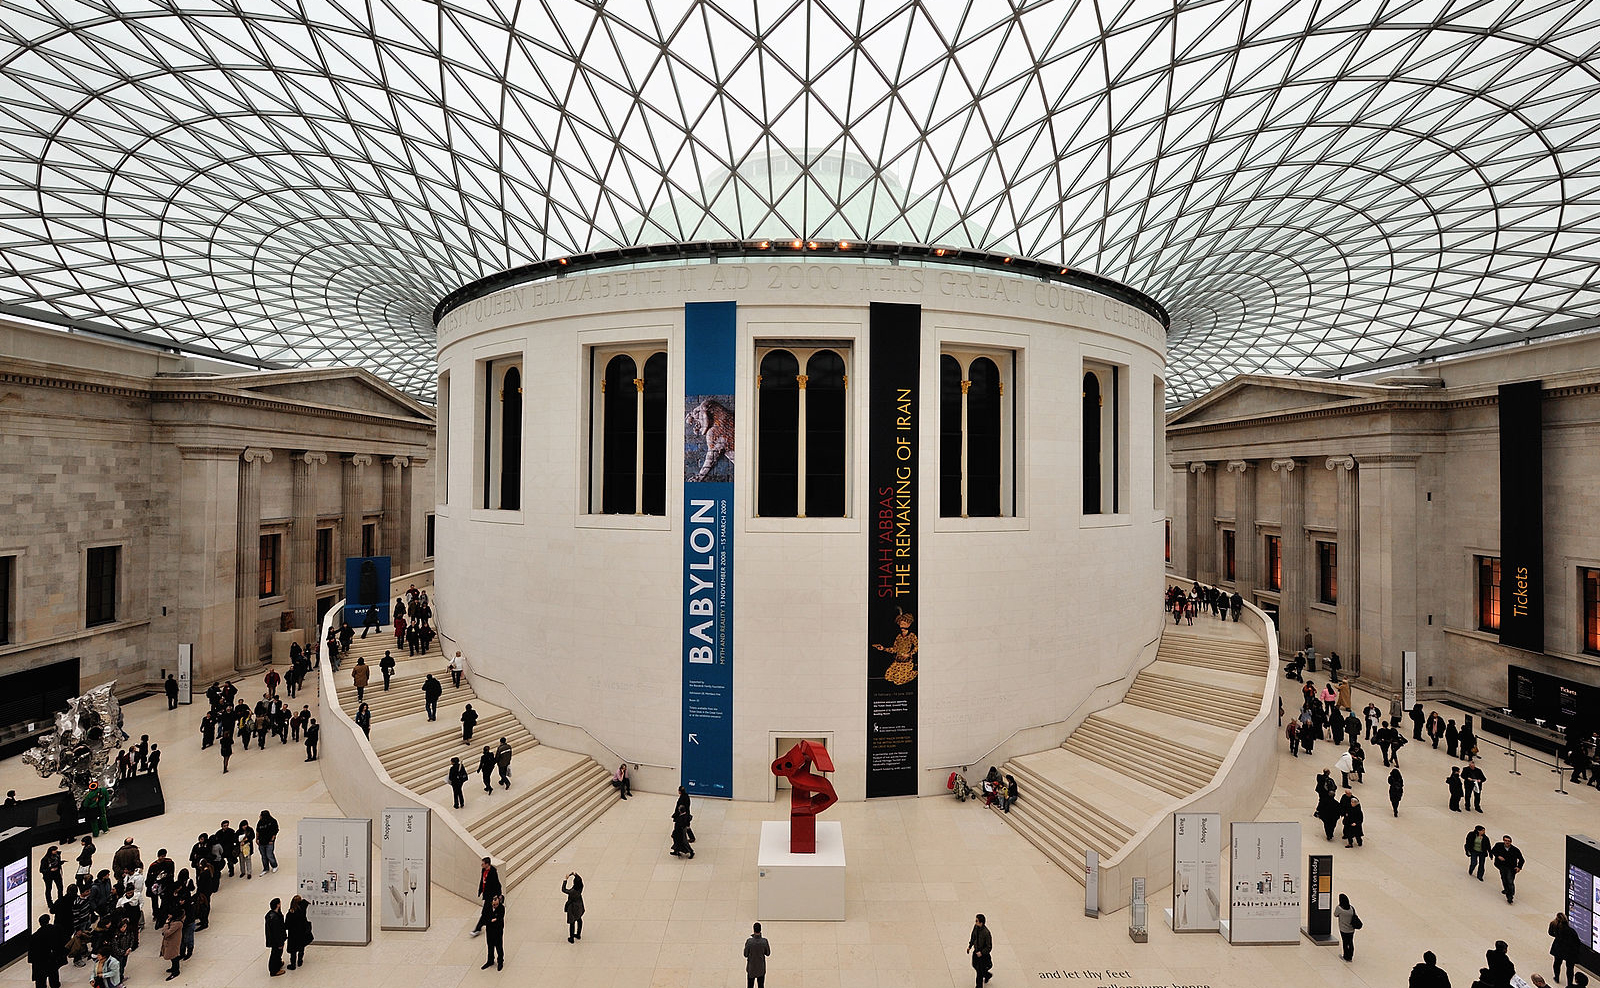 British Museum Workers Issue Statement in Support of Trustee Who Resigned - Hyperallergic